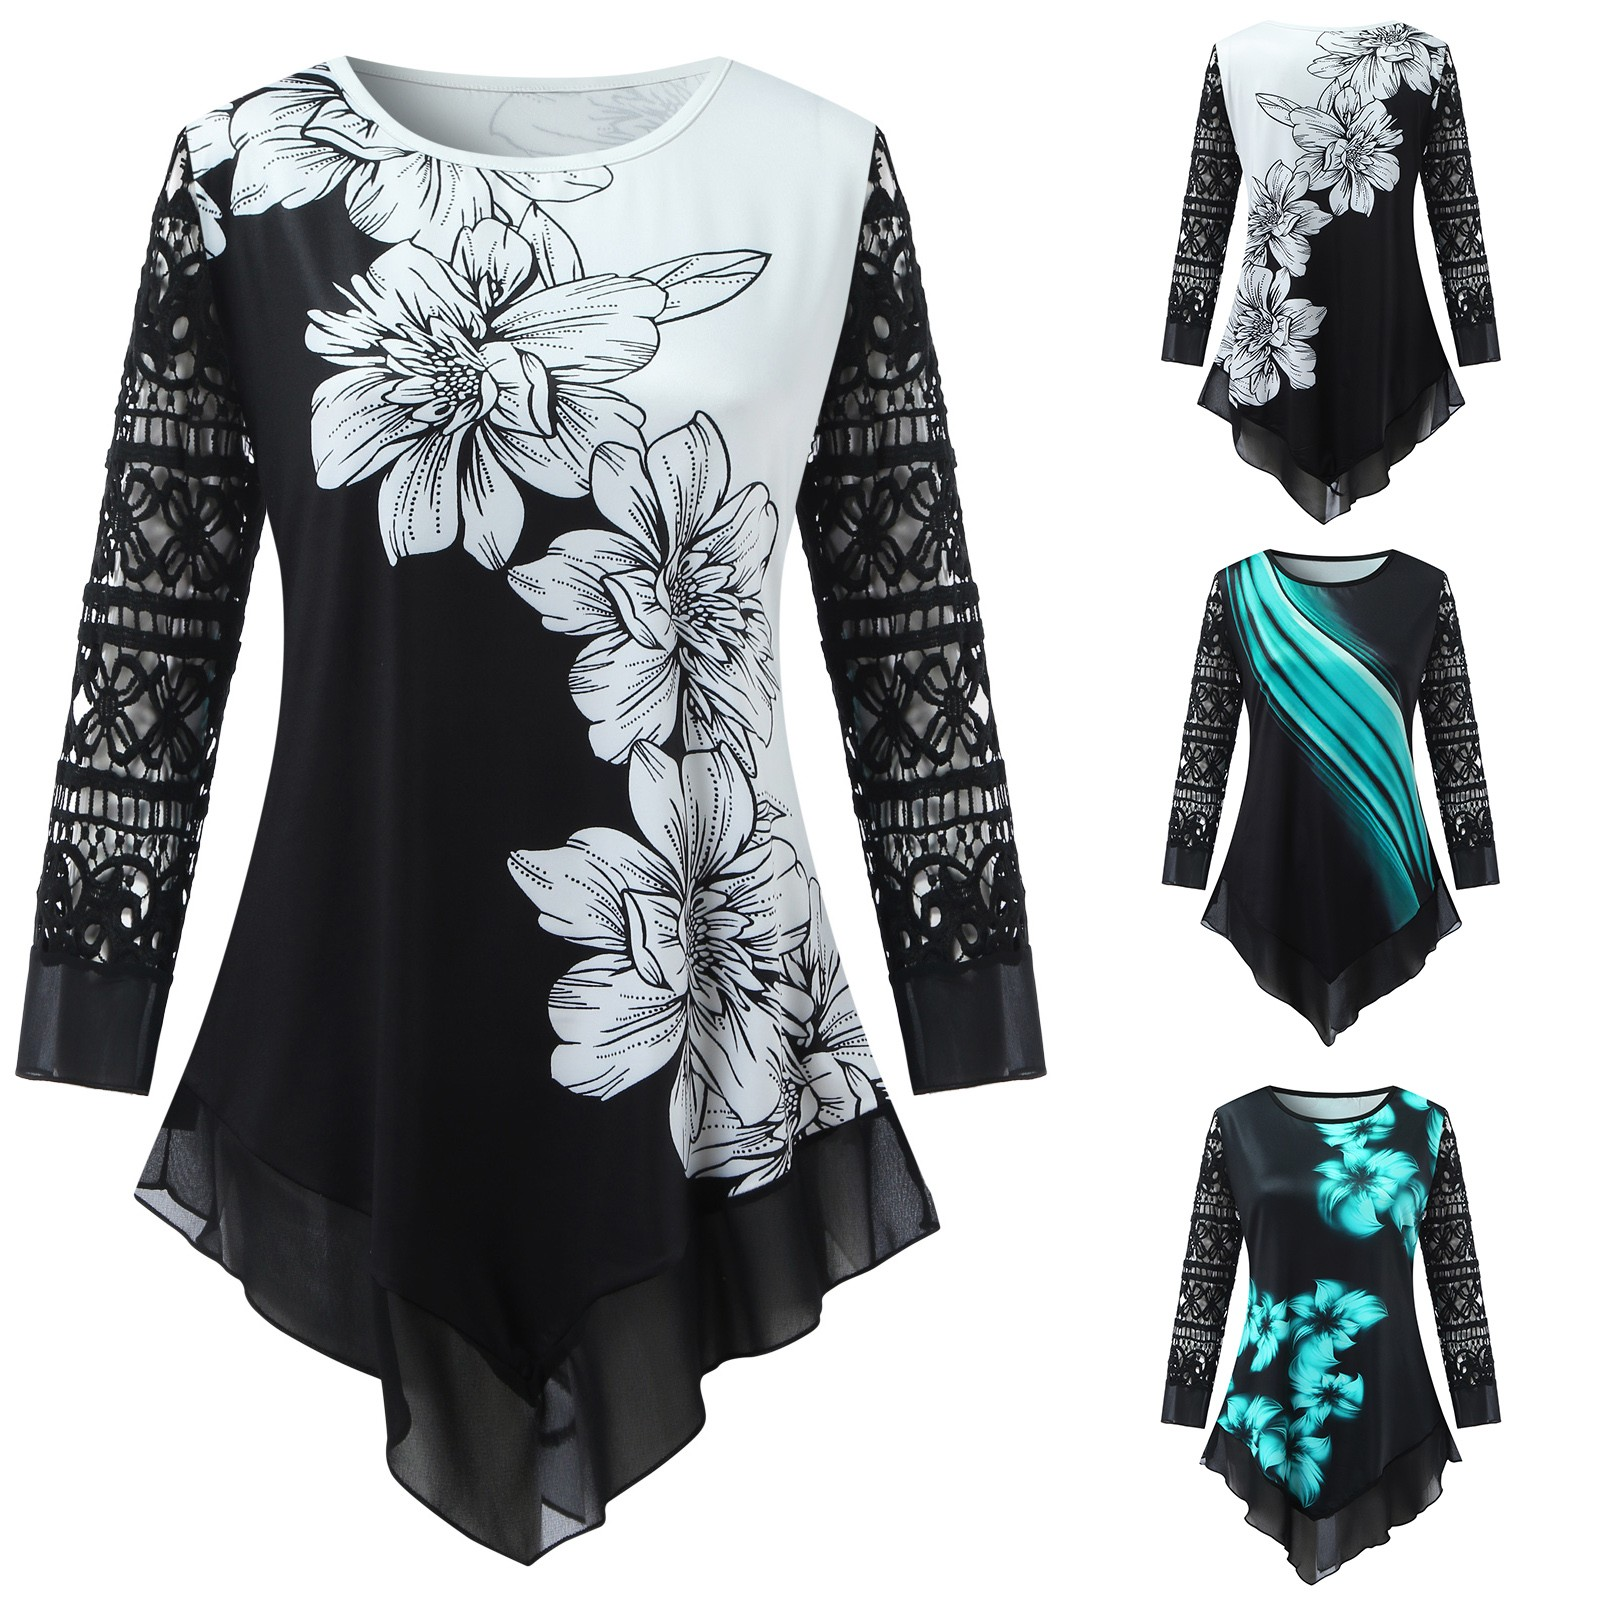 5xl Plus Size Flower Printed Tunic Shirts For Women Loose O neck Blouse Patchwork Lace Sleeve Nine Points Sleeve Shirt Top Mujer